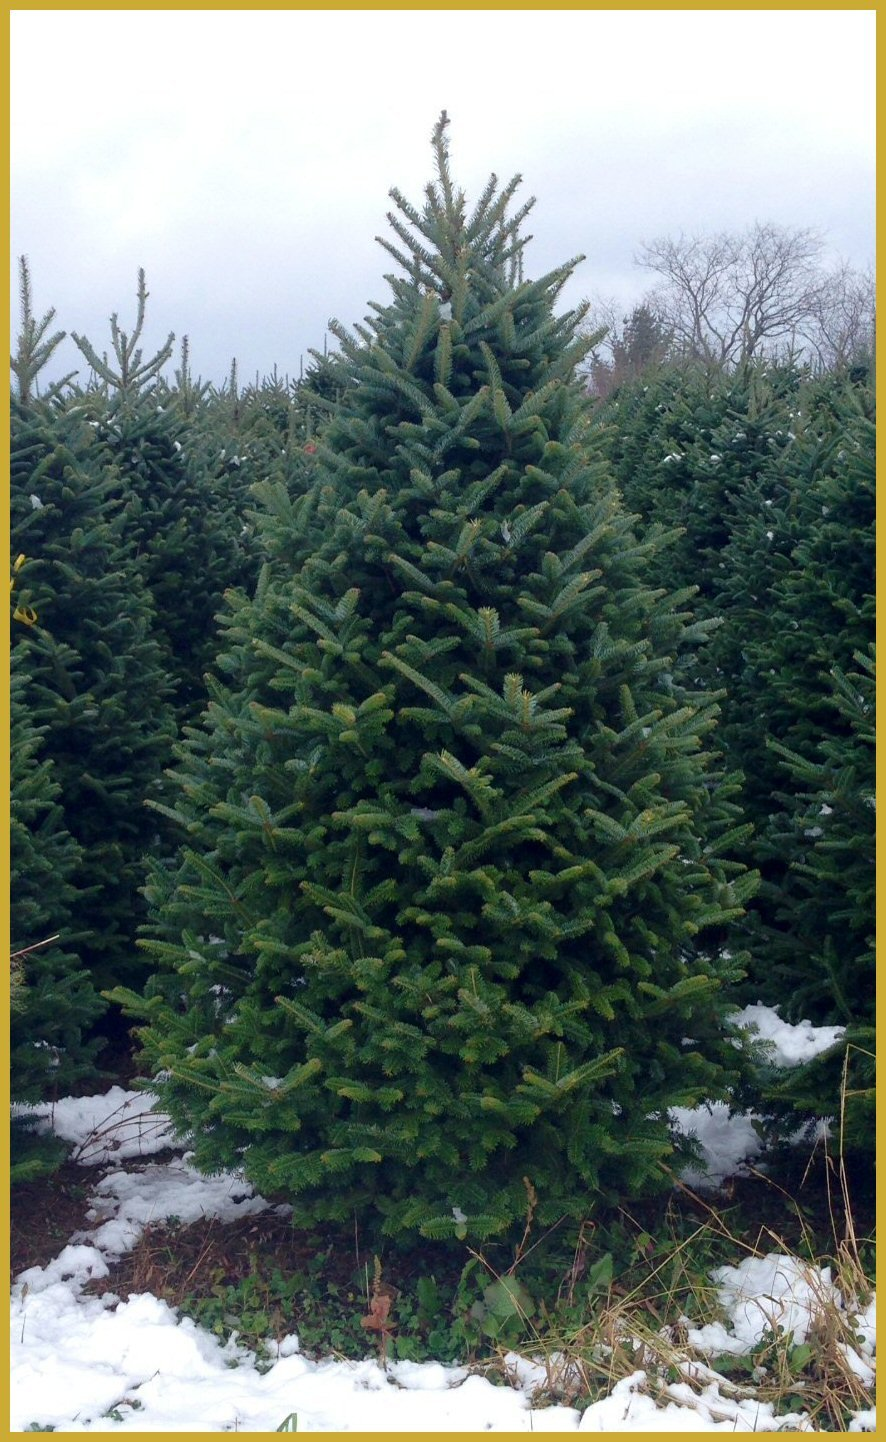 Grand Fir Christmas Tree - 5.5 - 6 ft. Blue Ridge Mountains - Real, Live Fraser Fir Christmas Tree (Fresh-Cut)